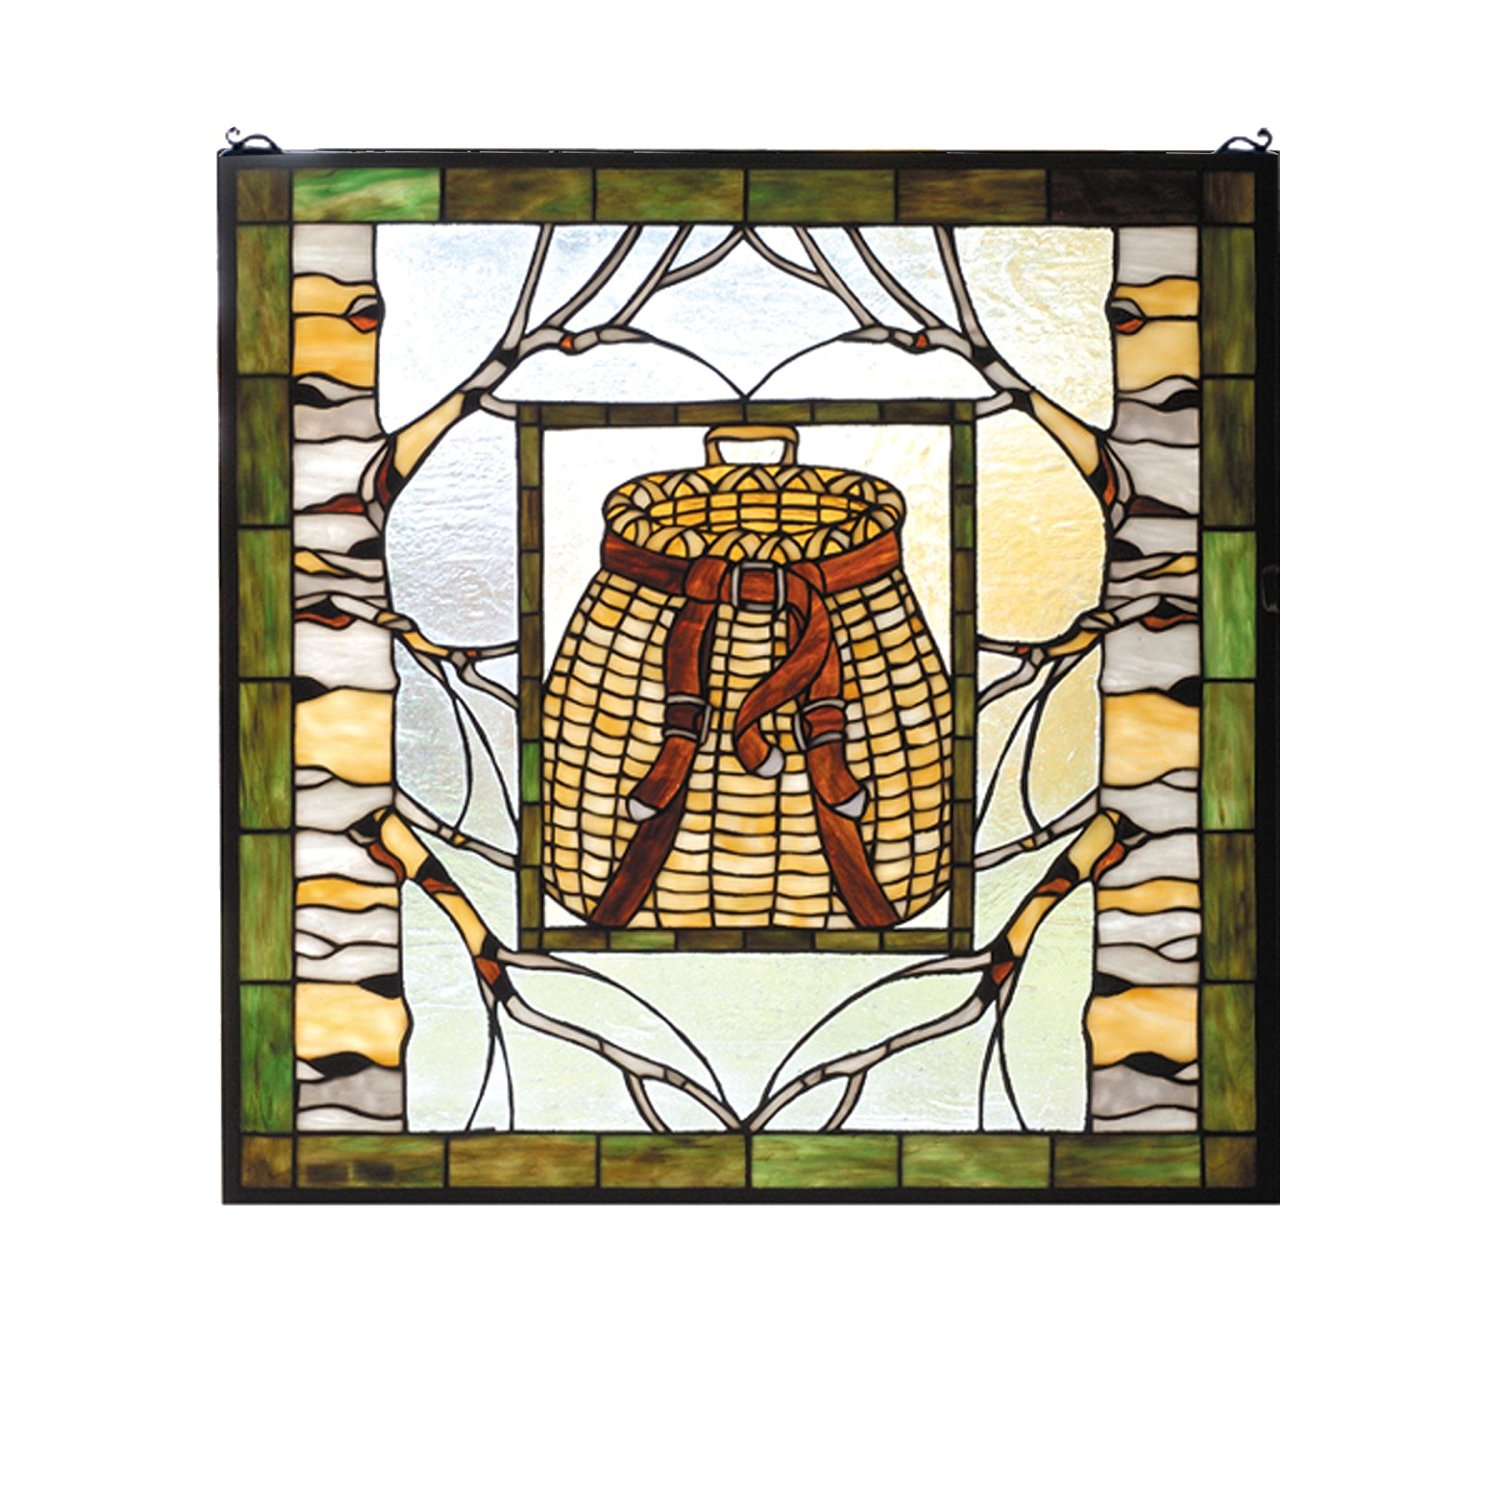 "Meyda Hand Crafted Designed Art Decorative Panel 24.5""W X 24.5""H Pack Basket Stained Glass Window"